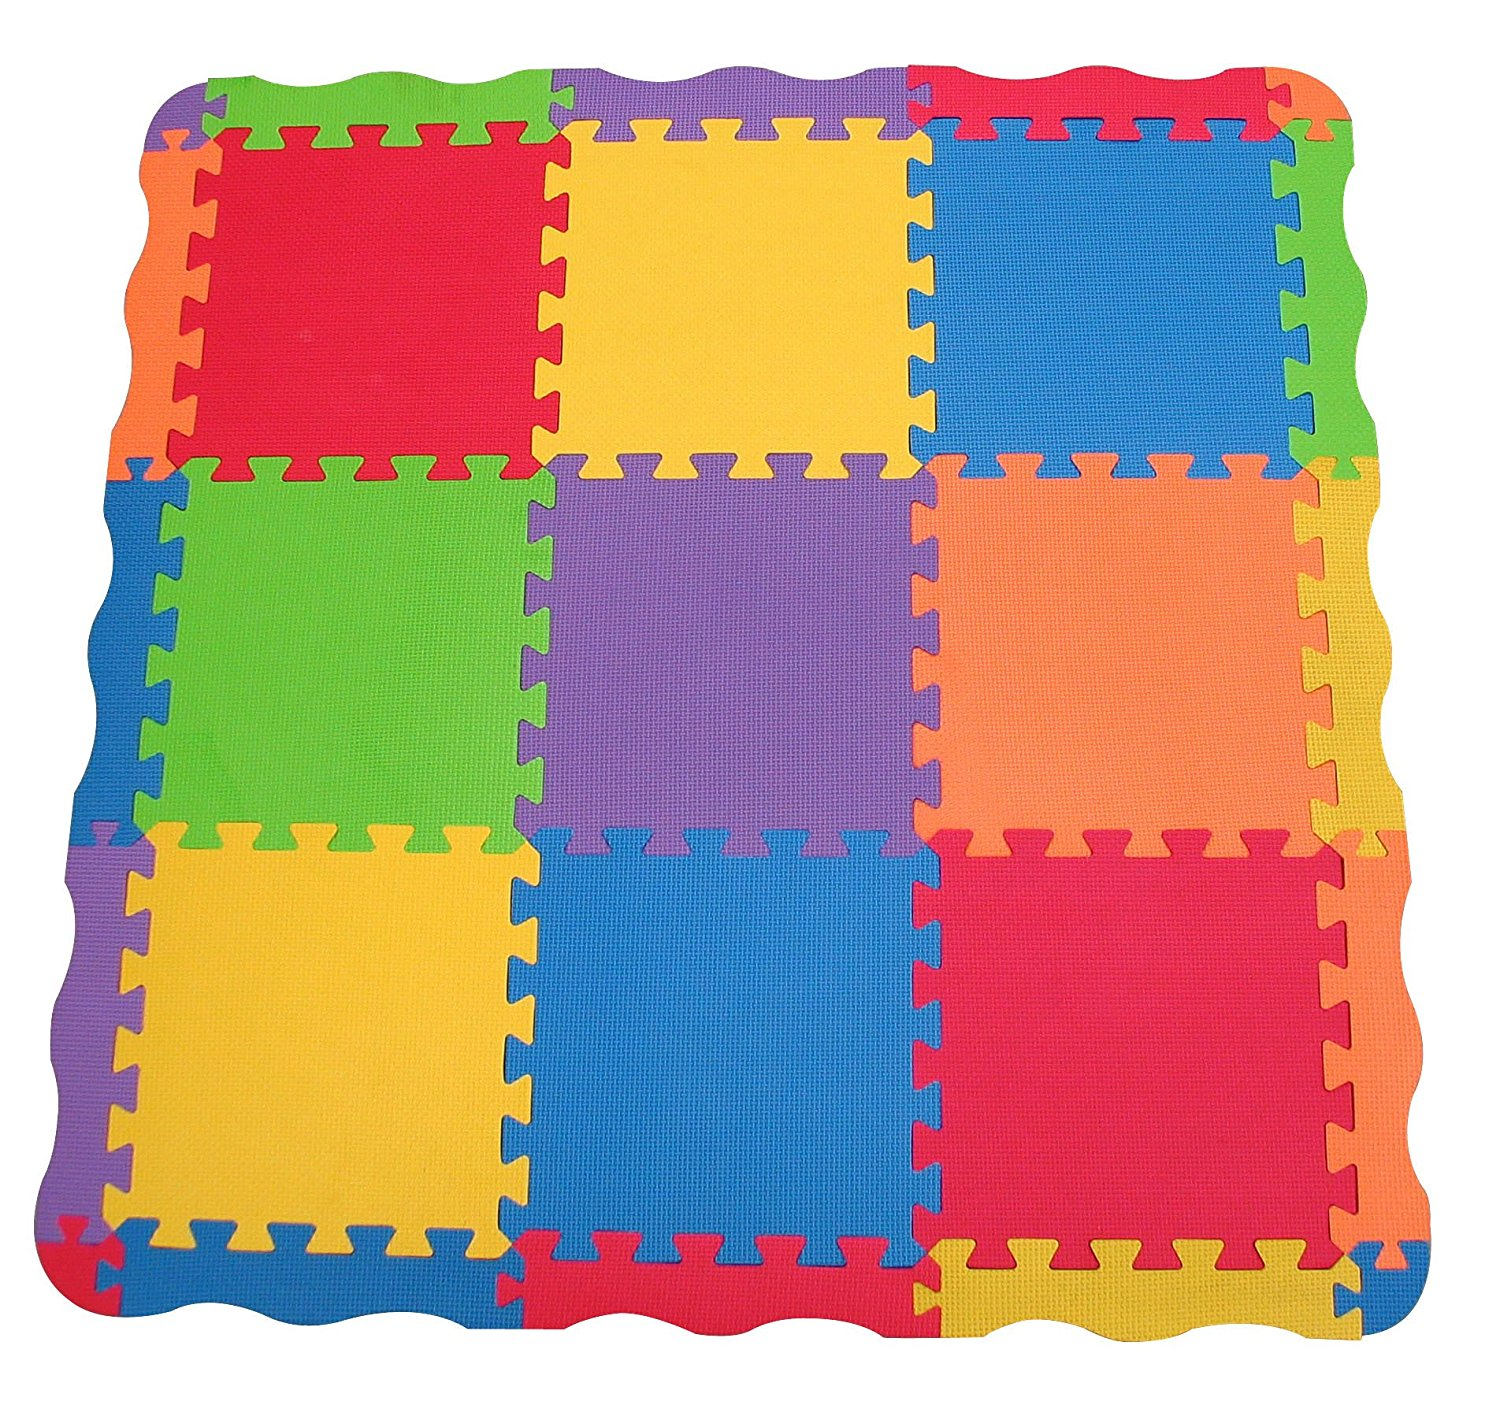 mats play child floor children image toddler baby edushape piece tiles carpet floors playmat mat main kids itm